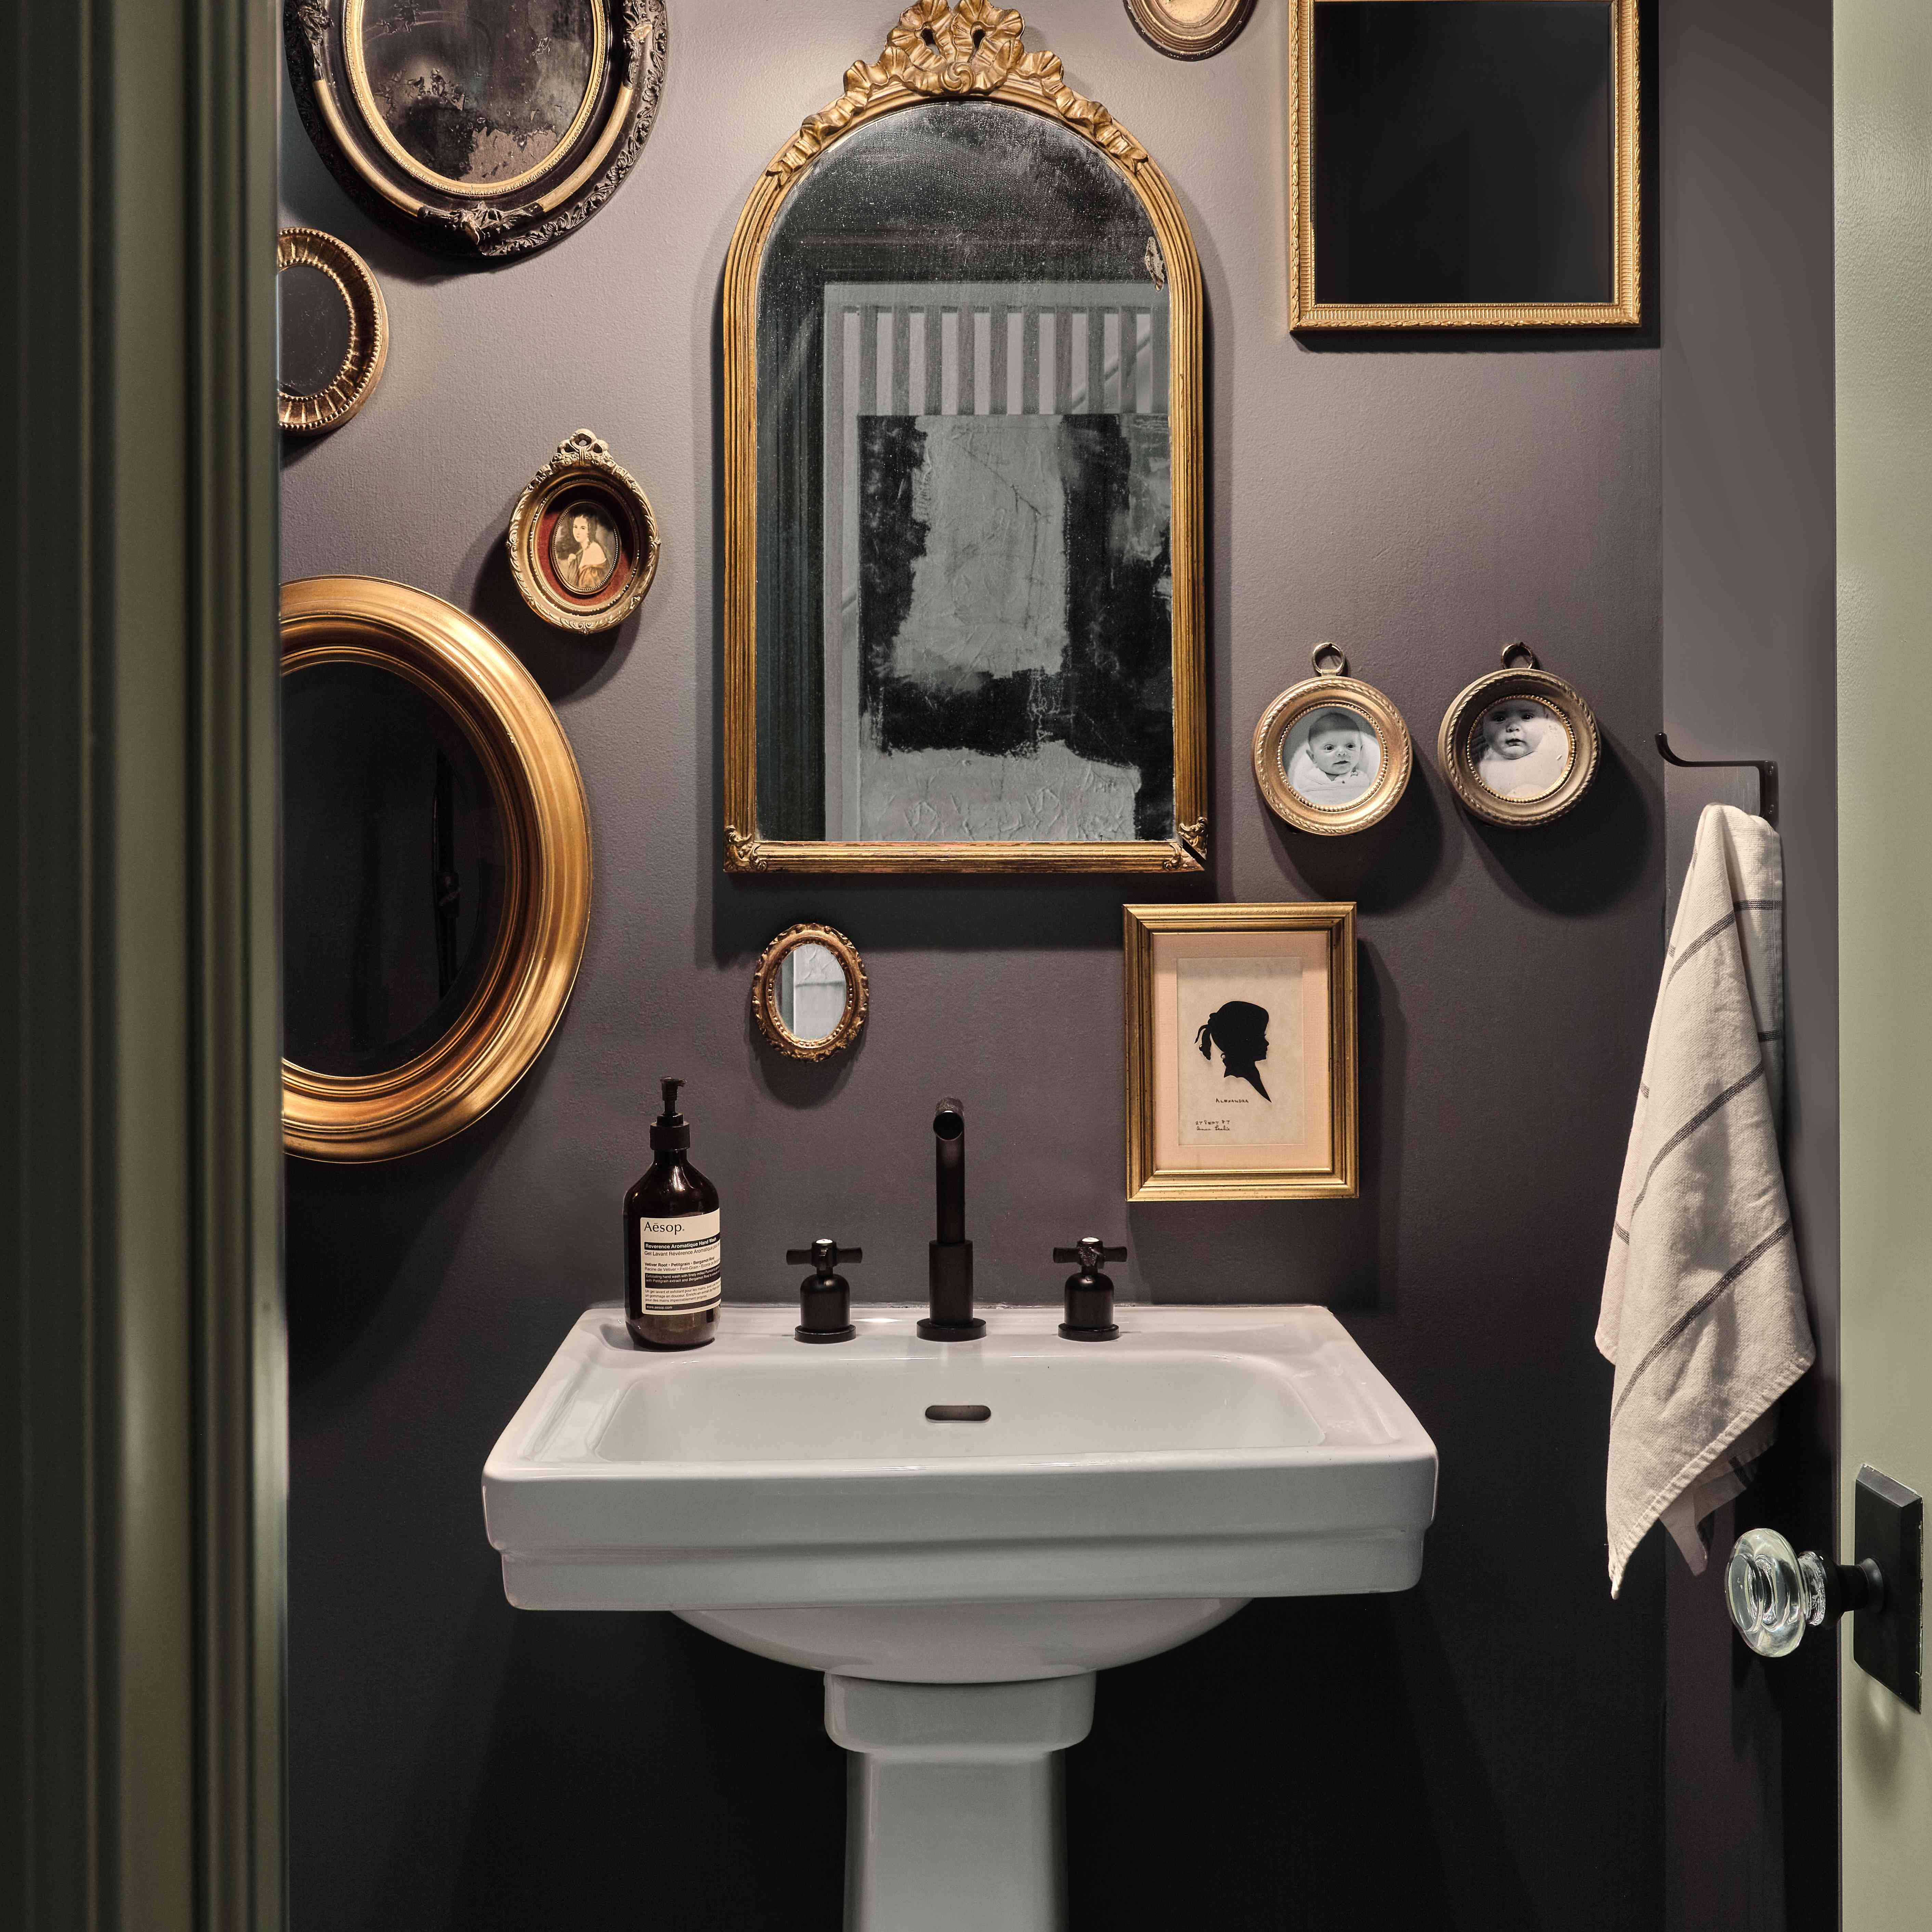 Small Bathroom Ideas To Make Your Space, Small Bathroom Pictures Gallery